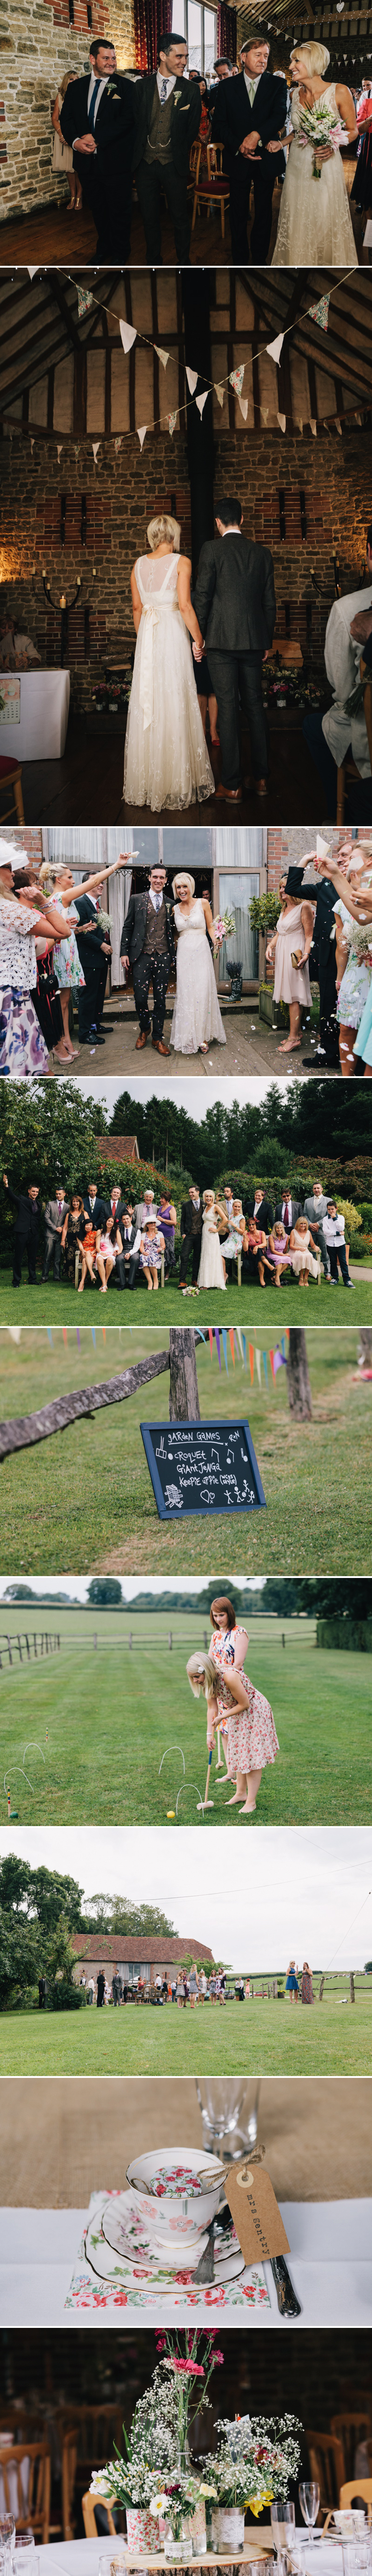 rustic-barn-wedding-venue-bartholomew-barn-west-sussex-coco-wedding-venues-brighton-photo-003